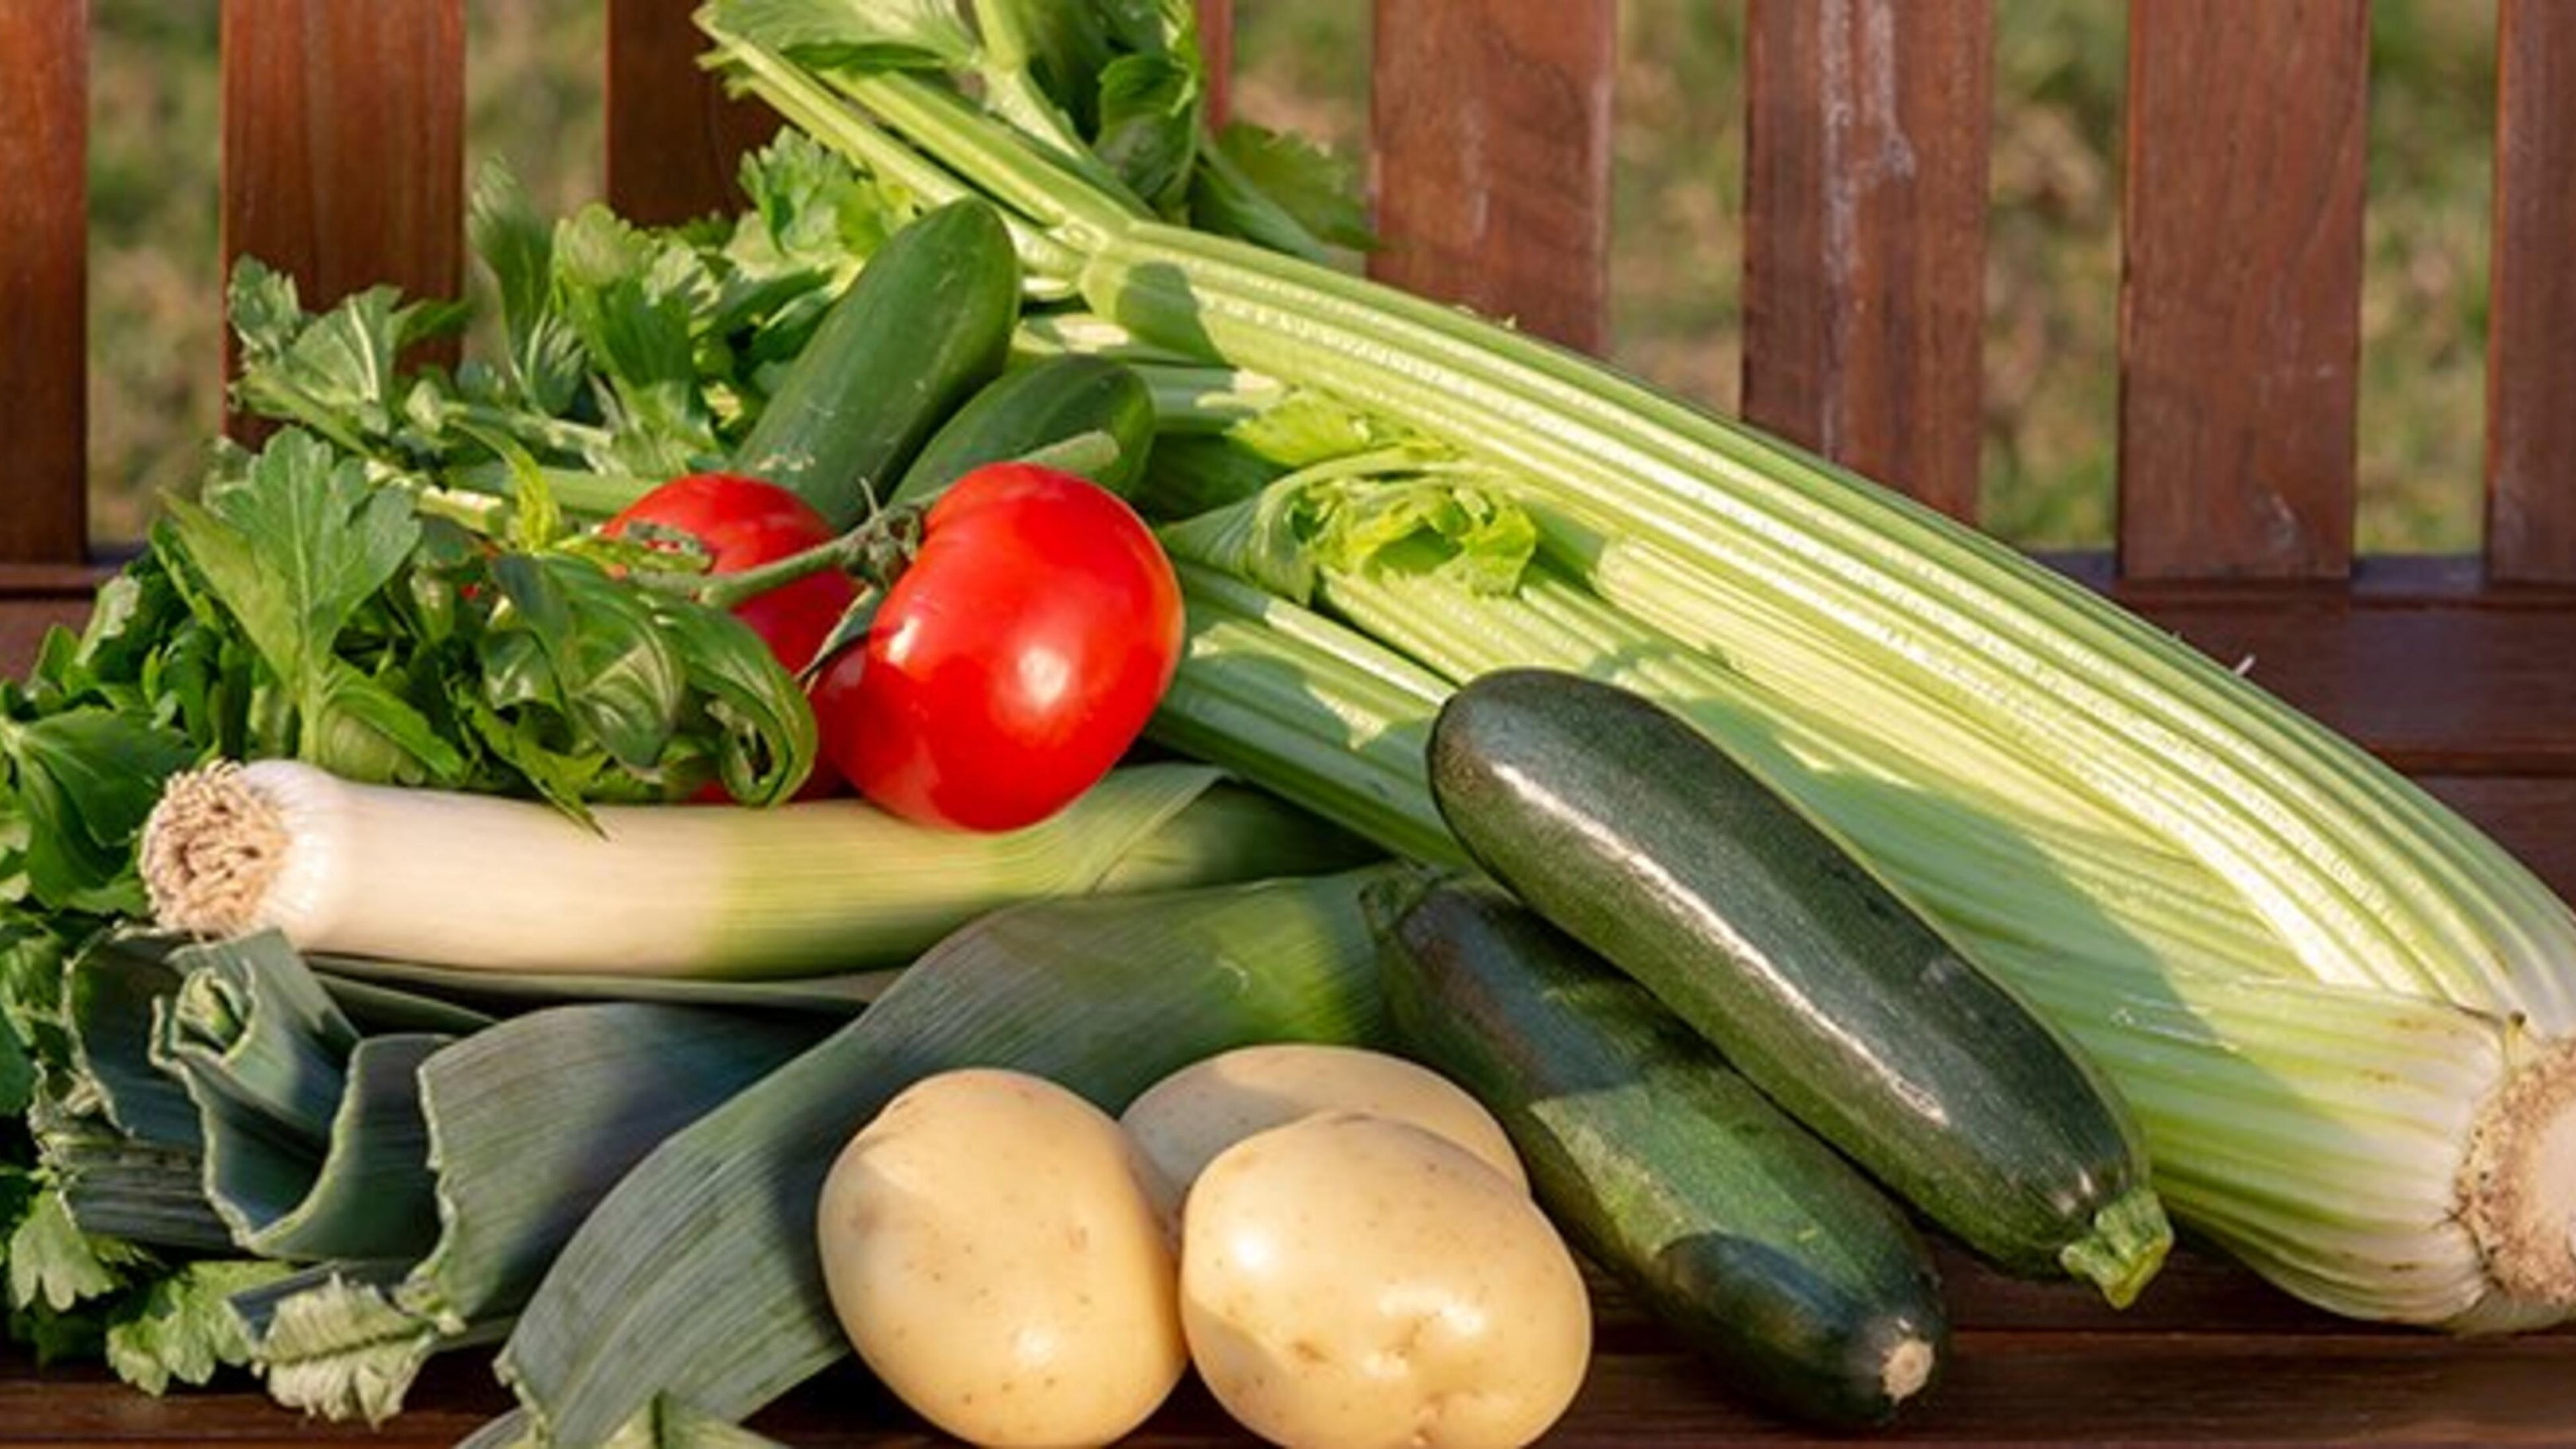 Harvested vegetables including celery, courgettes, potatoes, leeks and tomatoes.